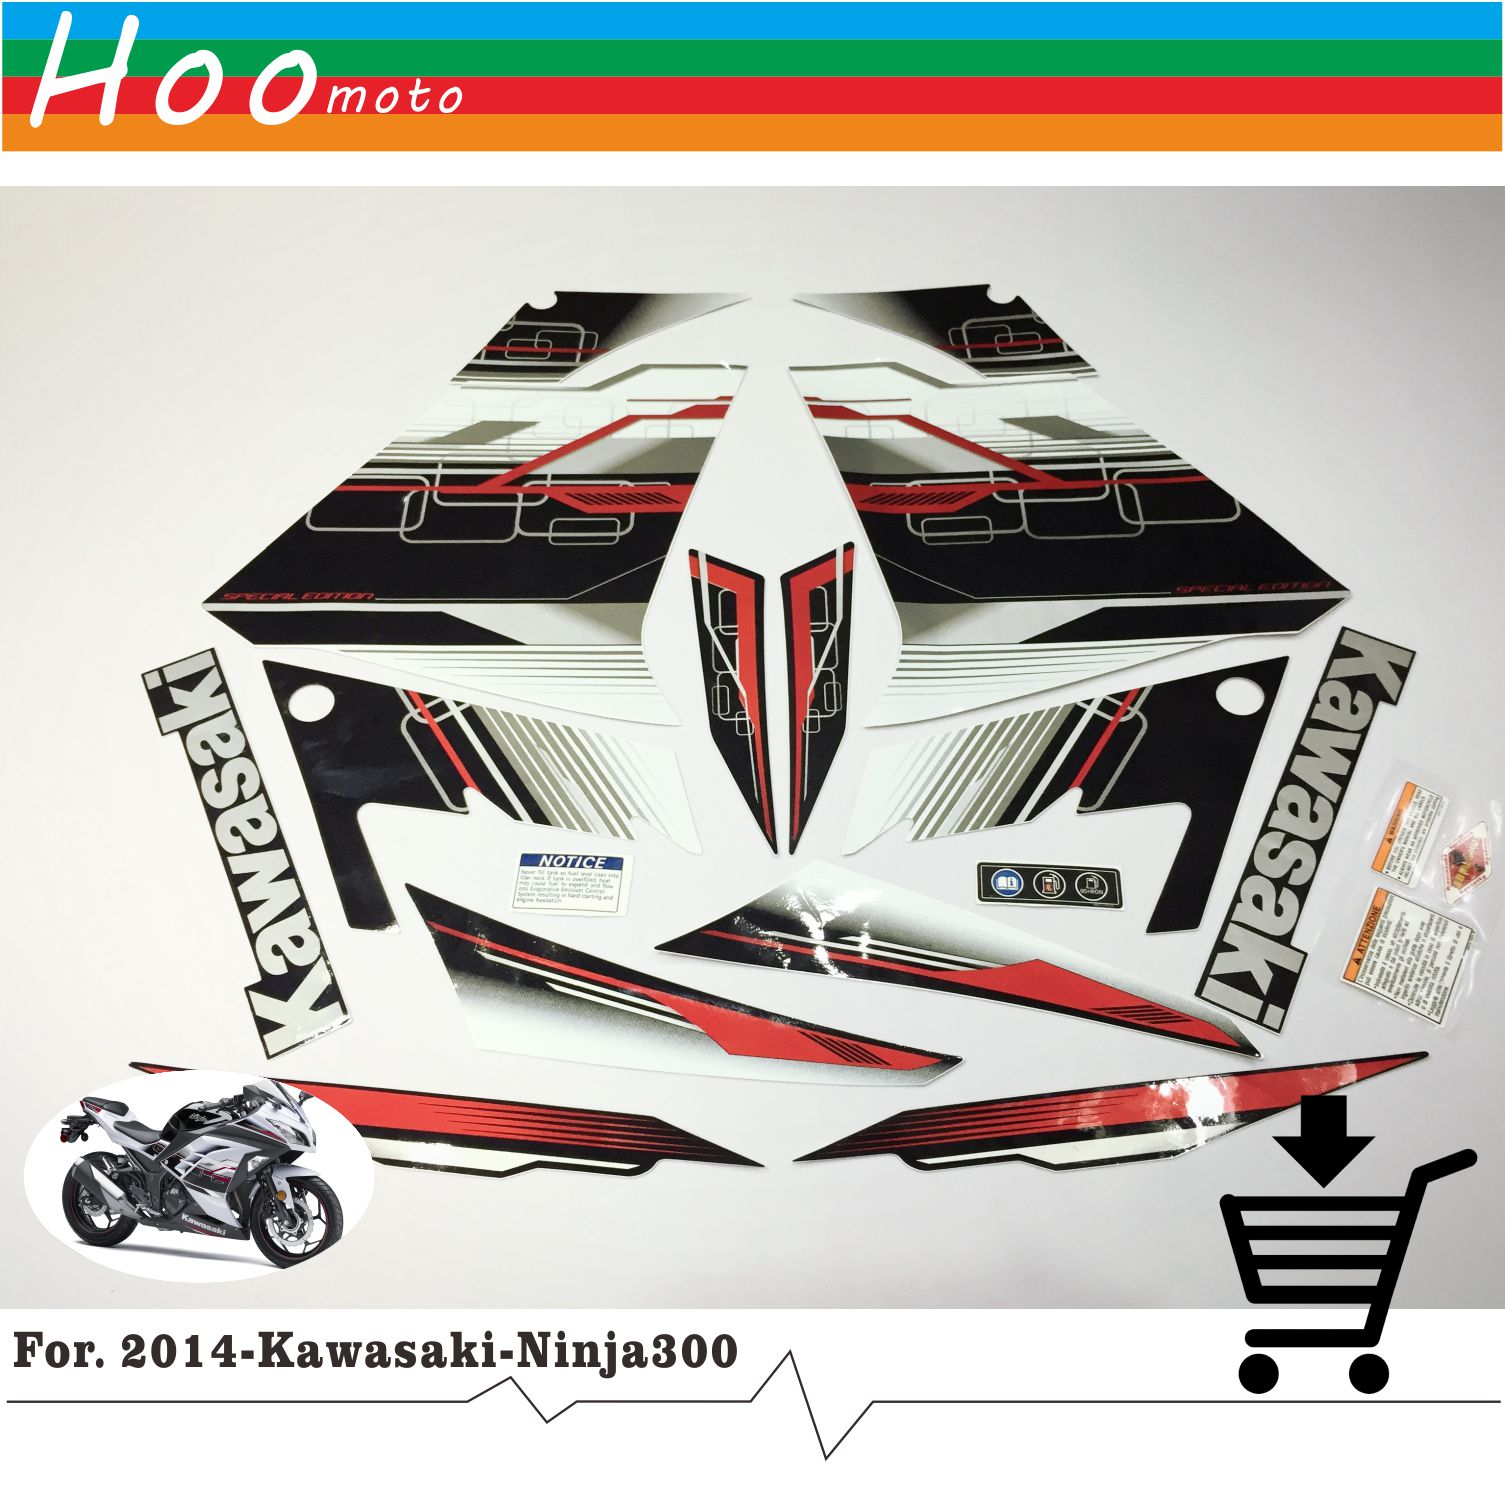 Ninja 300 Full Decals Stickers Graphics Kit Set Motorcycle Whole Vehicle 3M Decals Stickers for Kawasaki EX 2013 R Green Fairing hot sales 2007 2008 cbr600 fairing for honda cbr600rr f5 cbr 600 cbr 600rr 07 08 cbr 600 repsol fairing kit injection molding